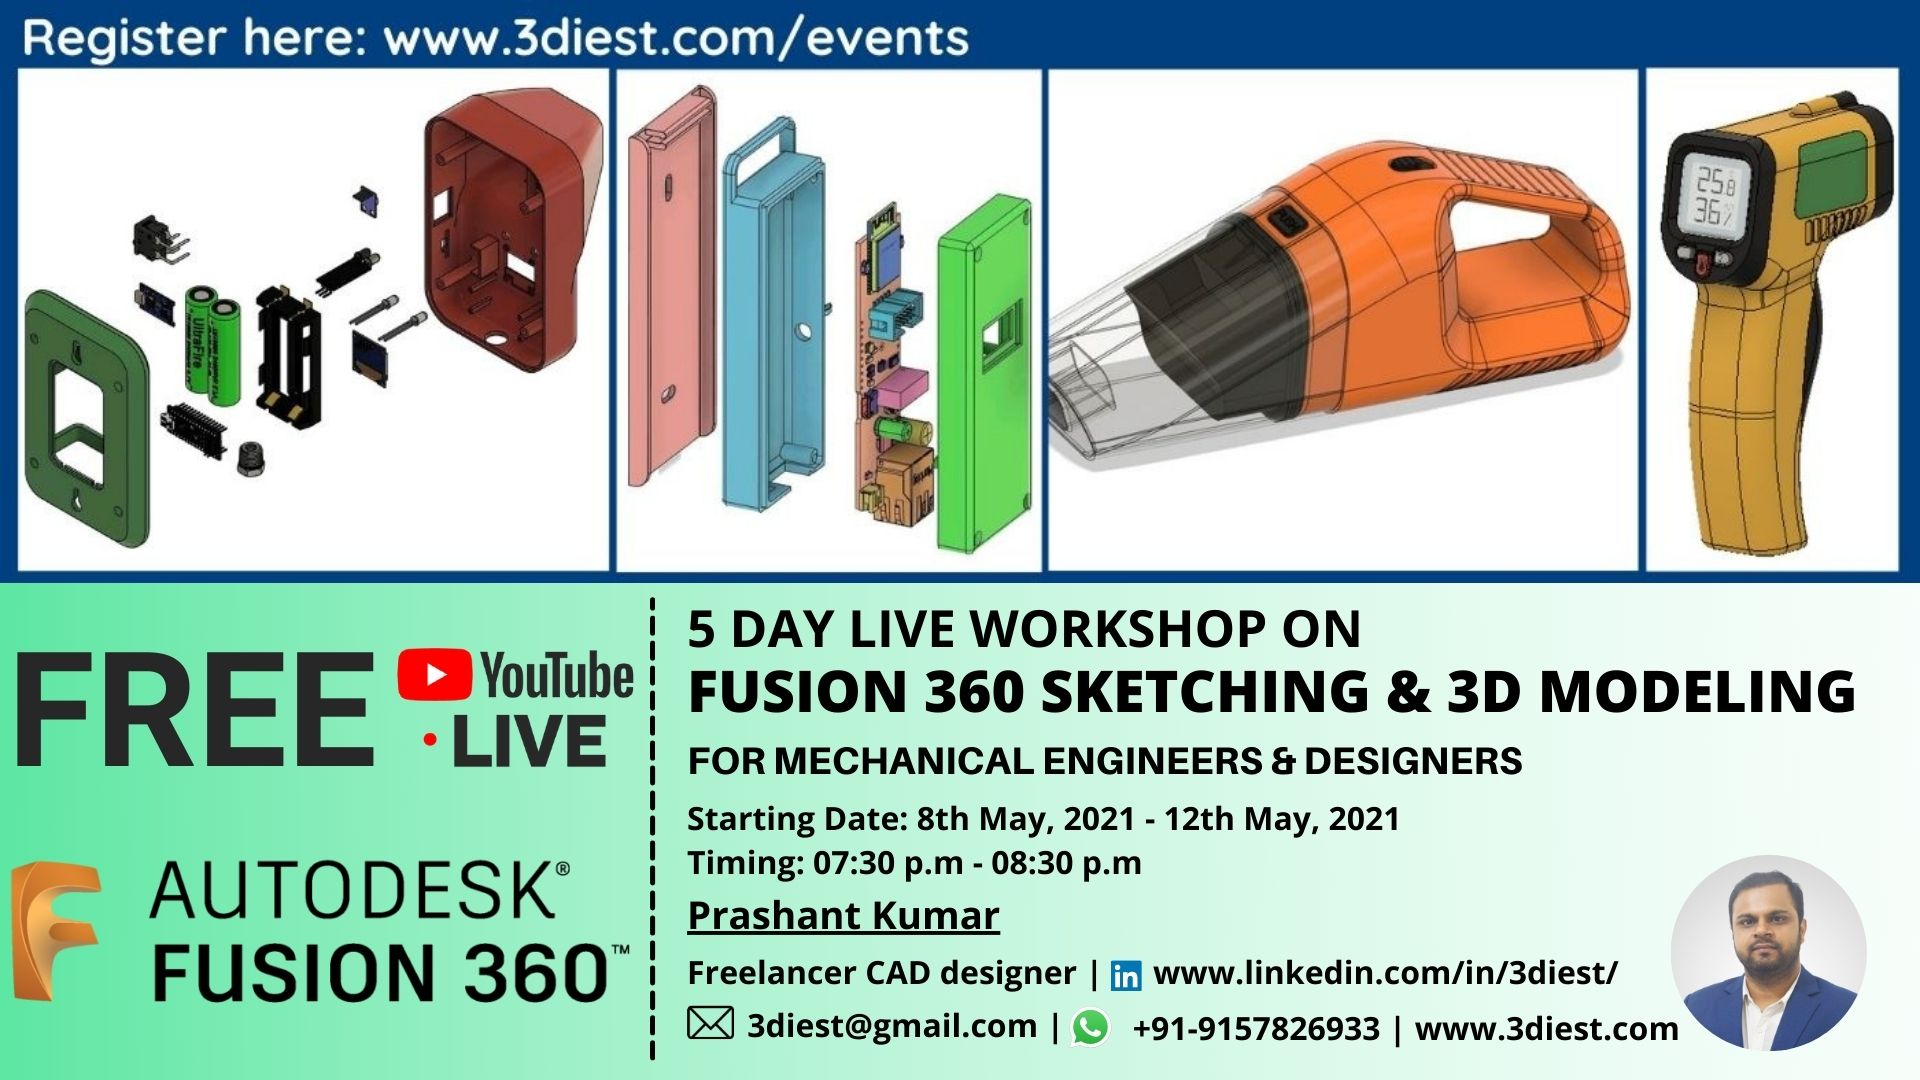 Fusion 360 Sketching and 3D modeling Free 5 day workshop